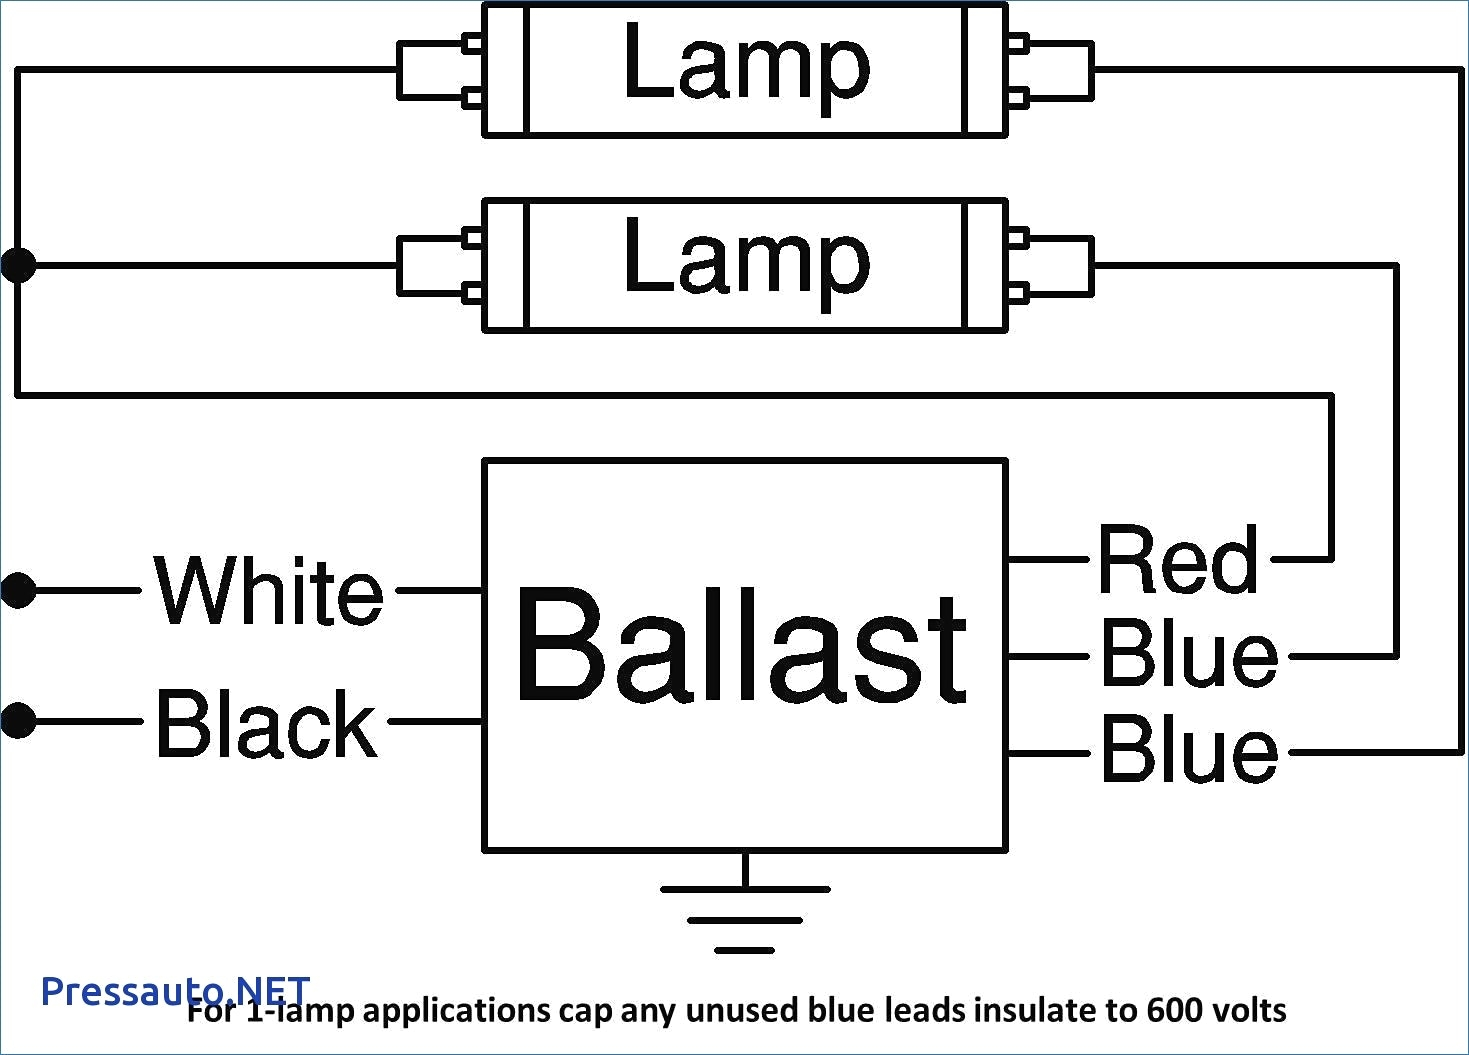 hight resolution of led fluorescent tube wiring diagram led fluorescent tube wiring diagram lovely lamp wiring diagram blurts